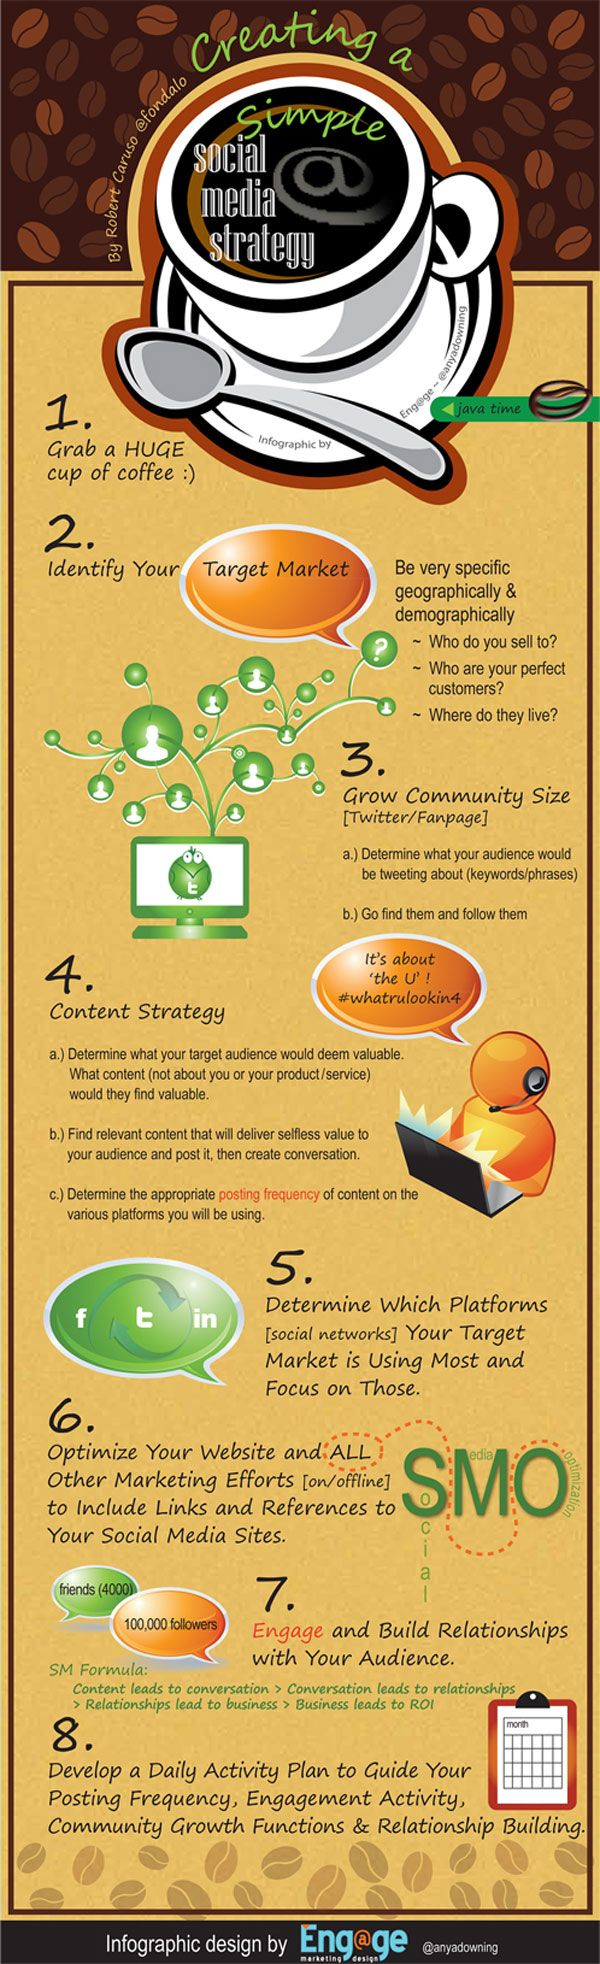 simple-social-media-strategy-infographic.jpg (600×1964)